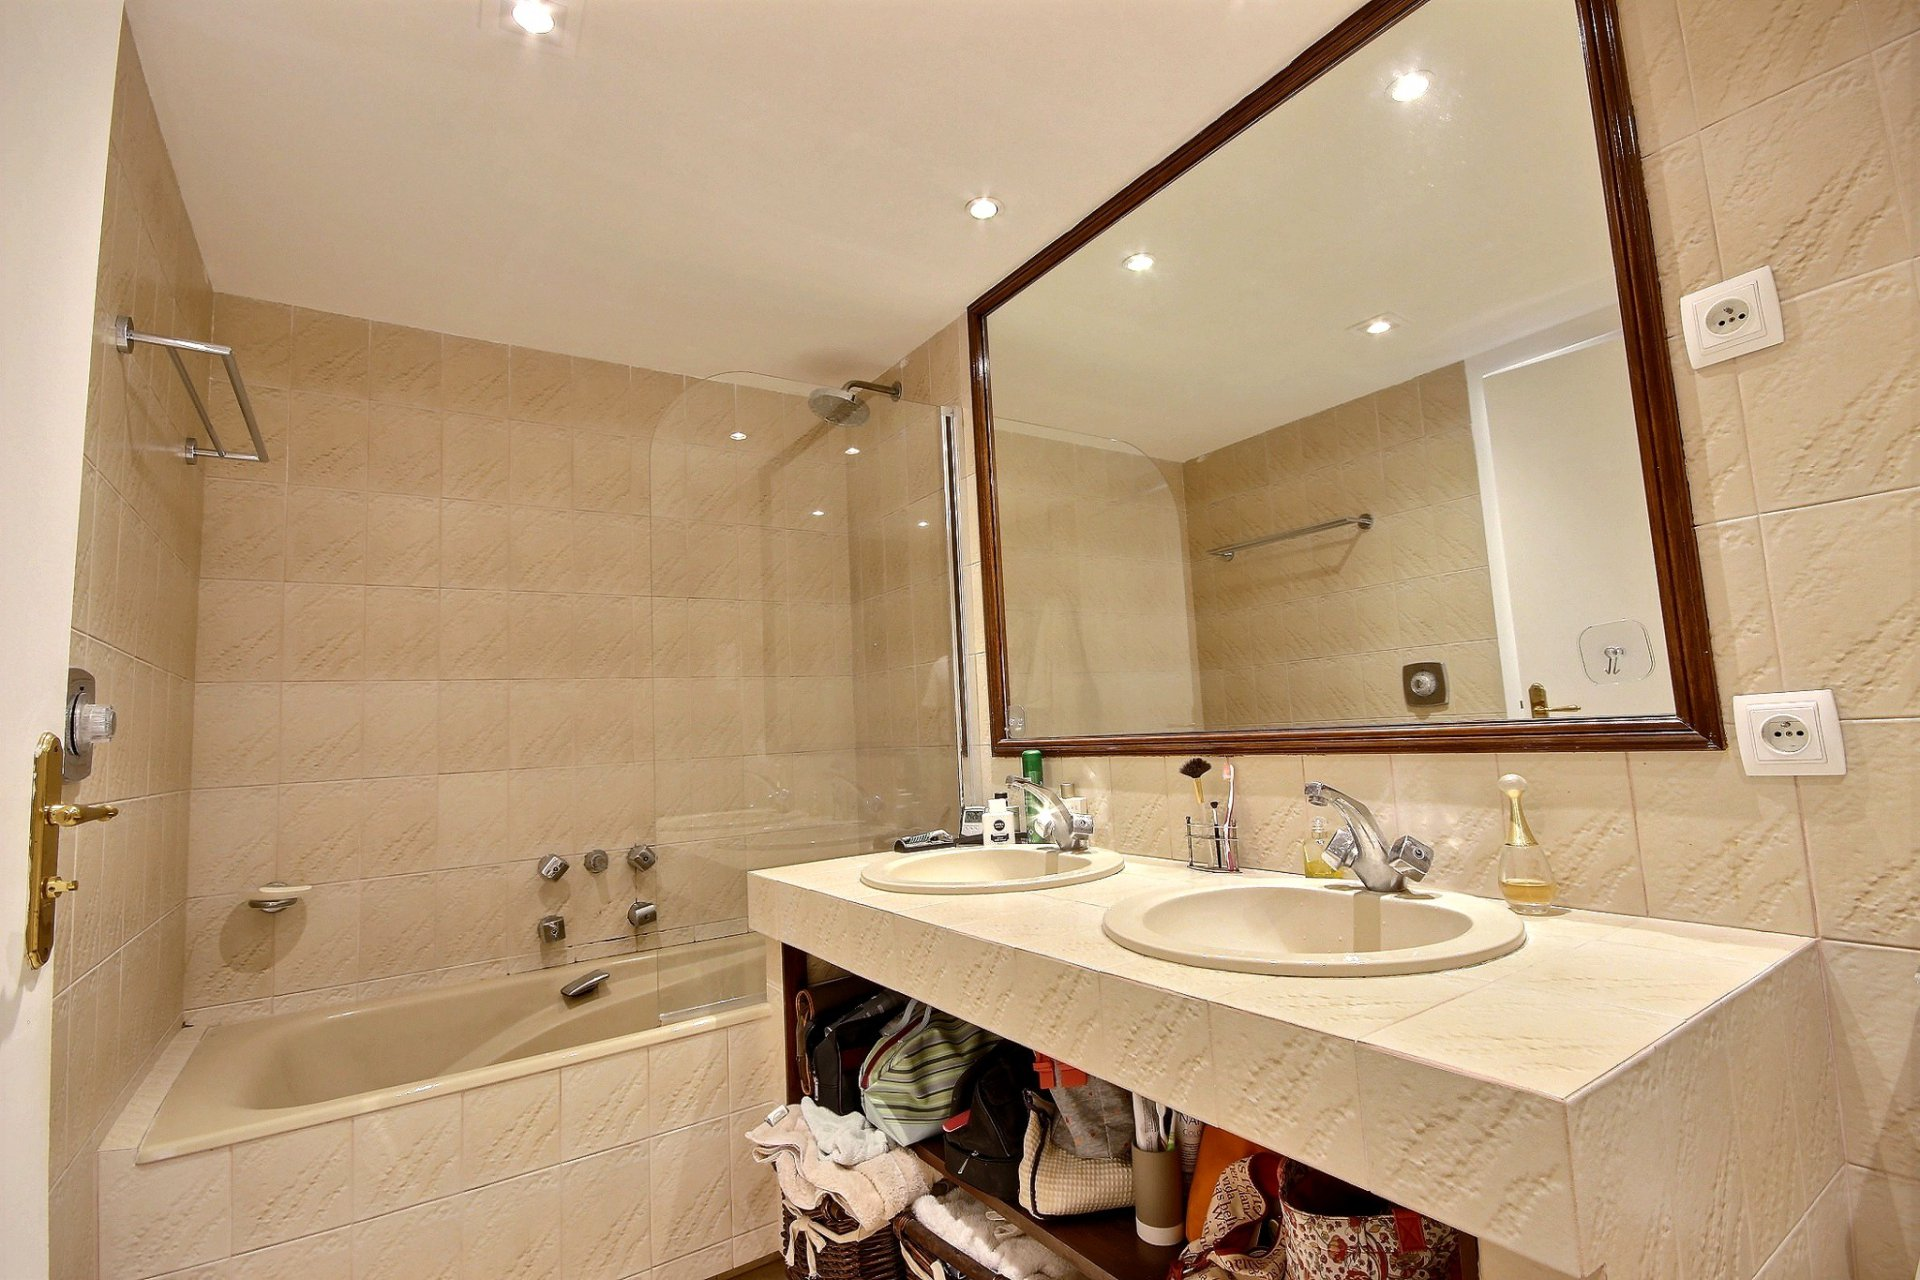 property for sale in cannes palm beach with terrace bathroom